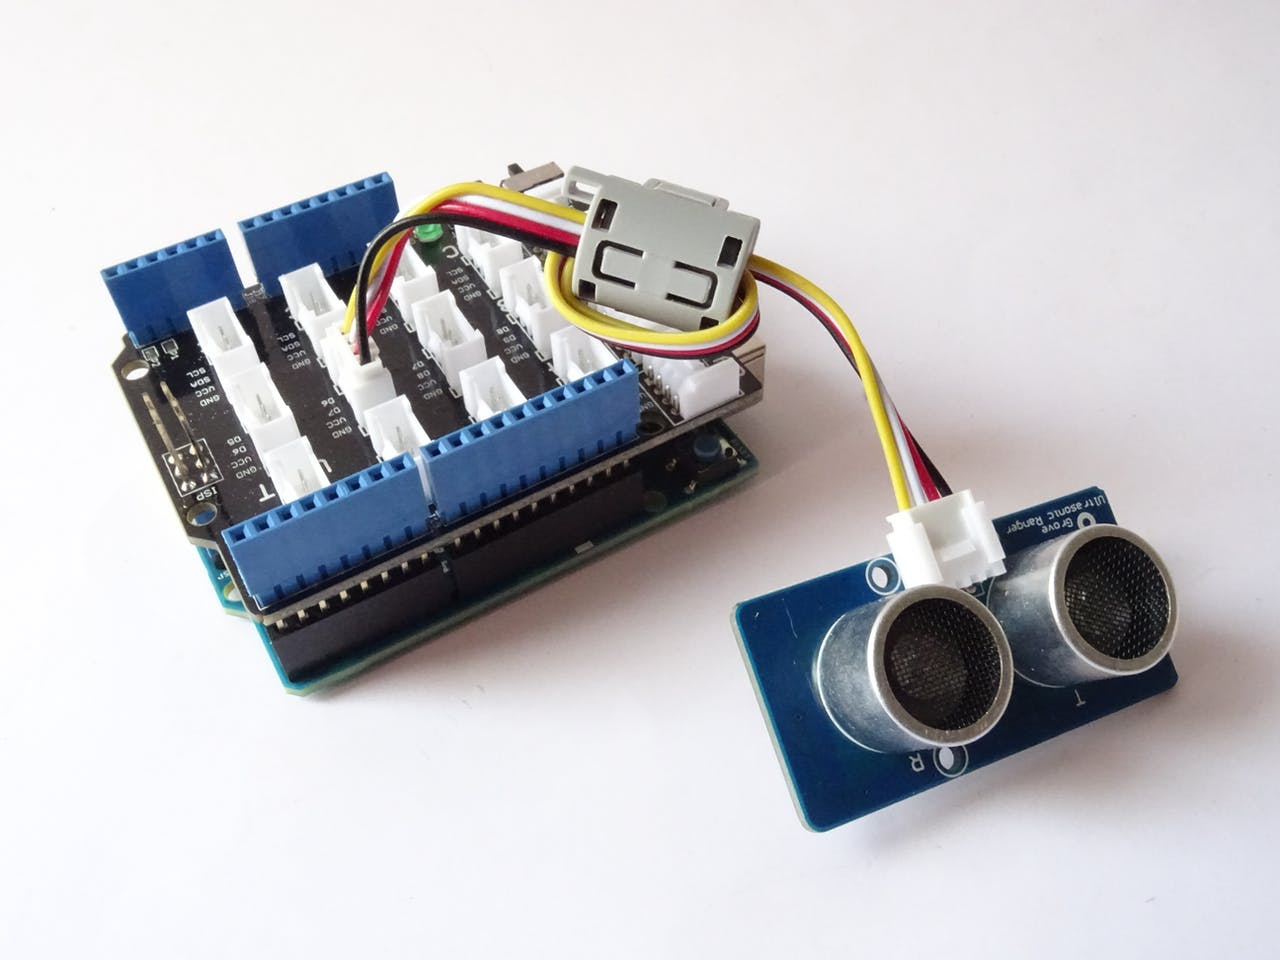 Smart Garbage Monitoring System Using Arduino 101 Circuit Digest Electronic Circuits Projects Community